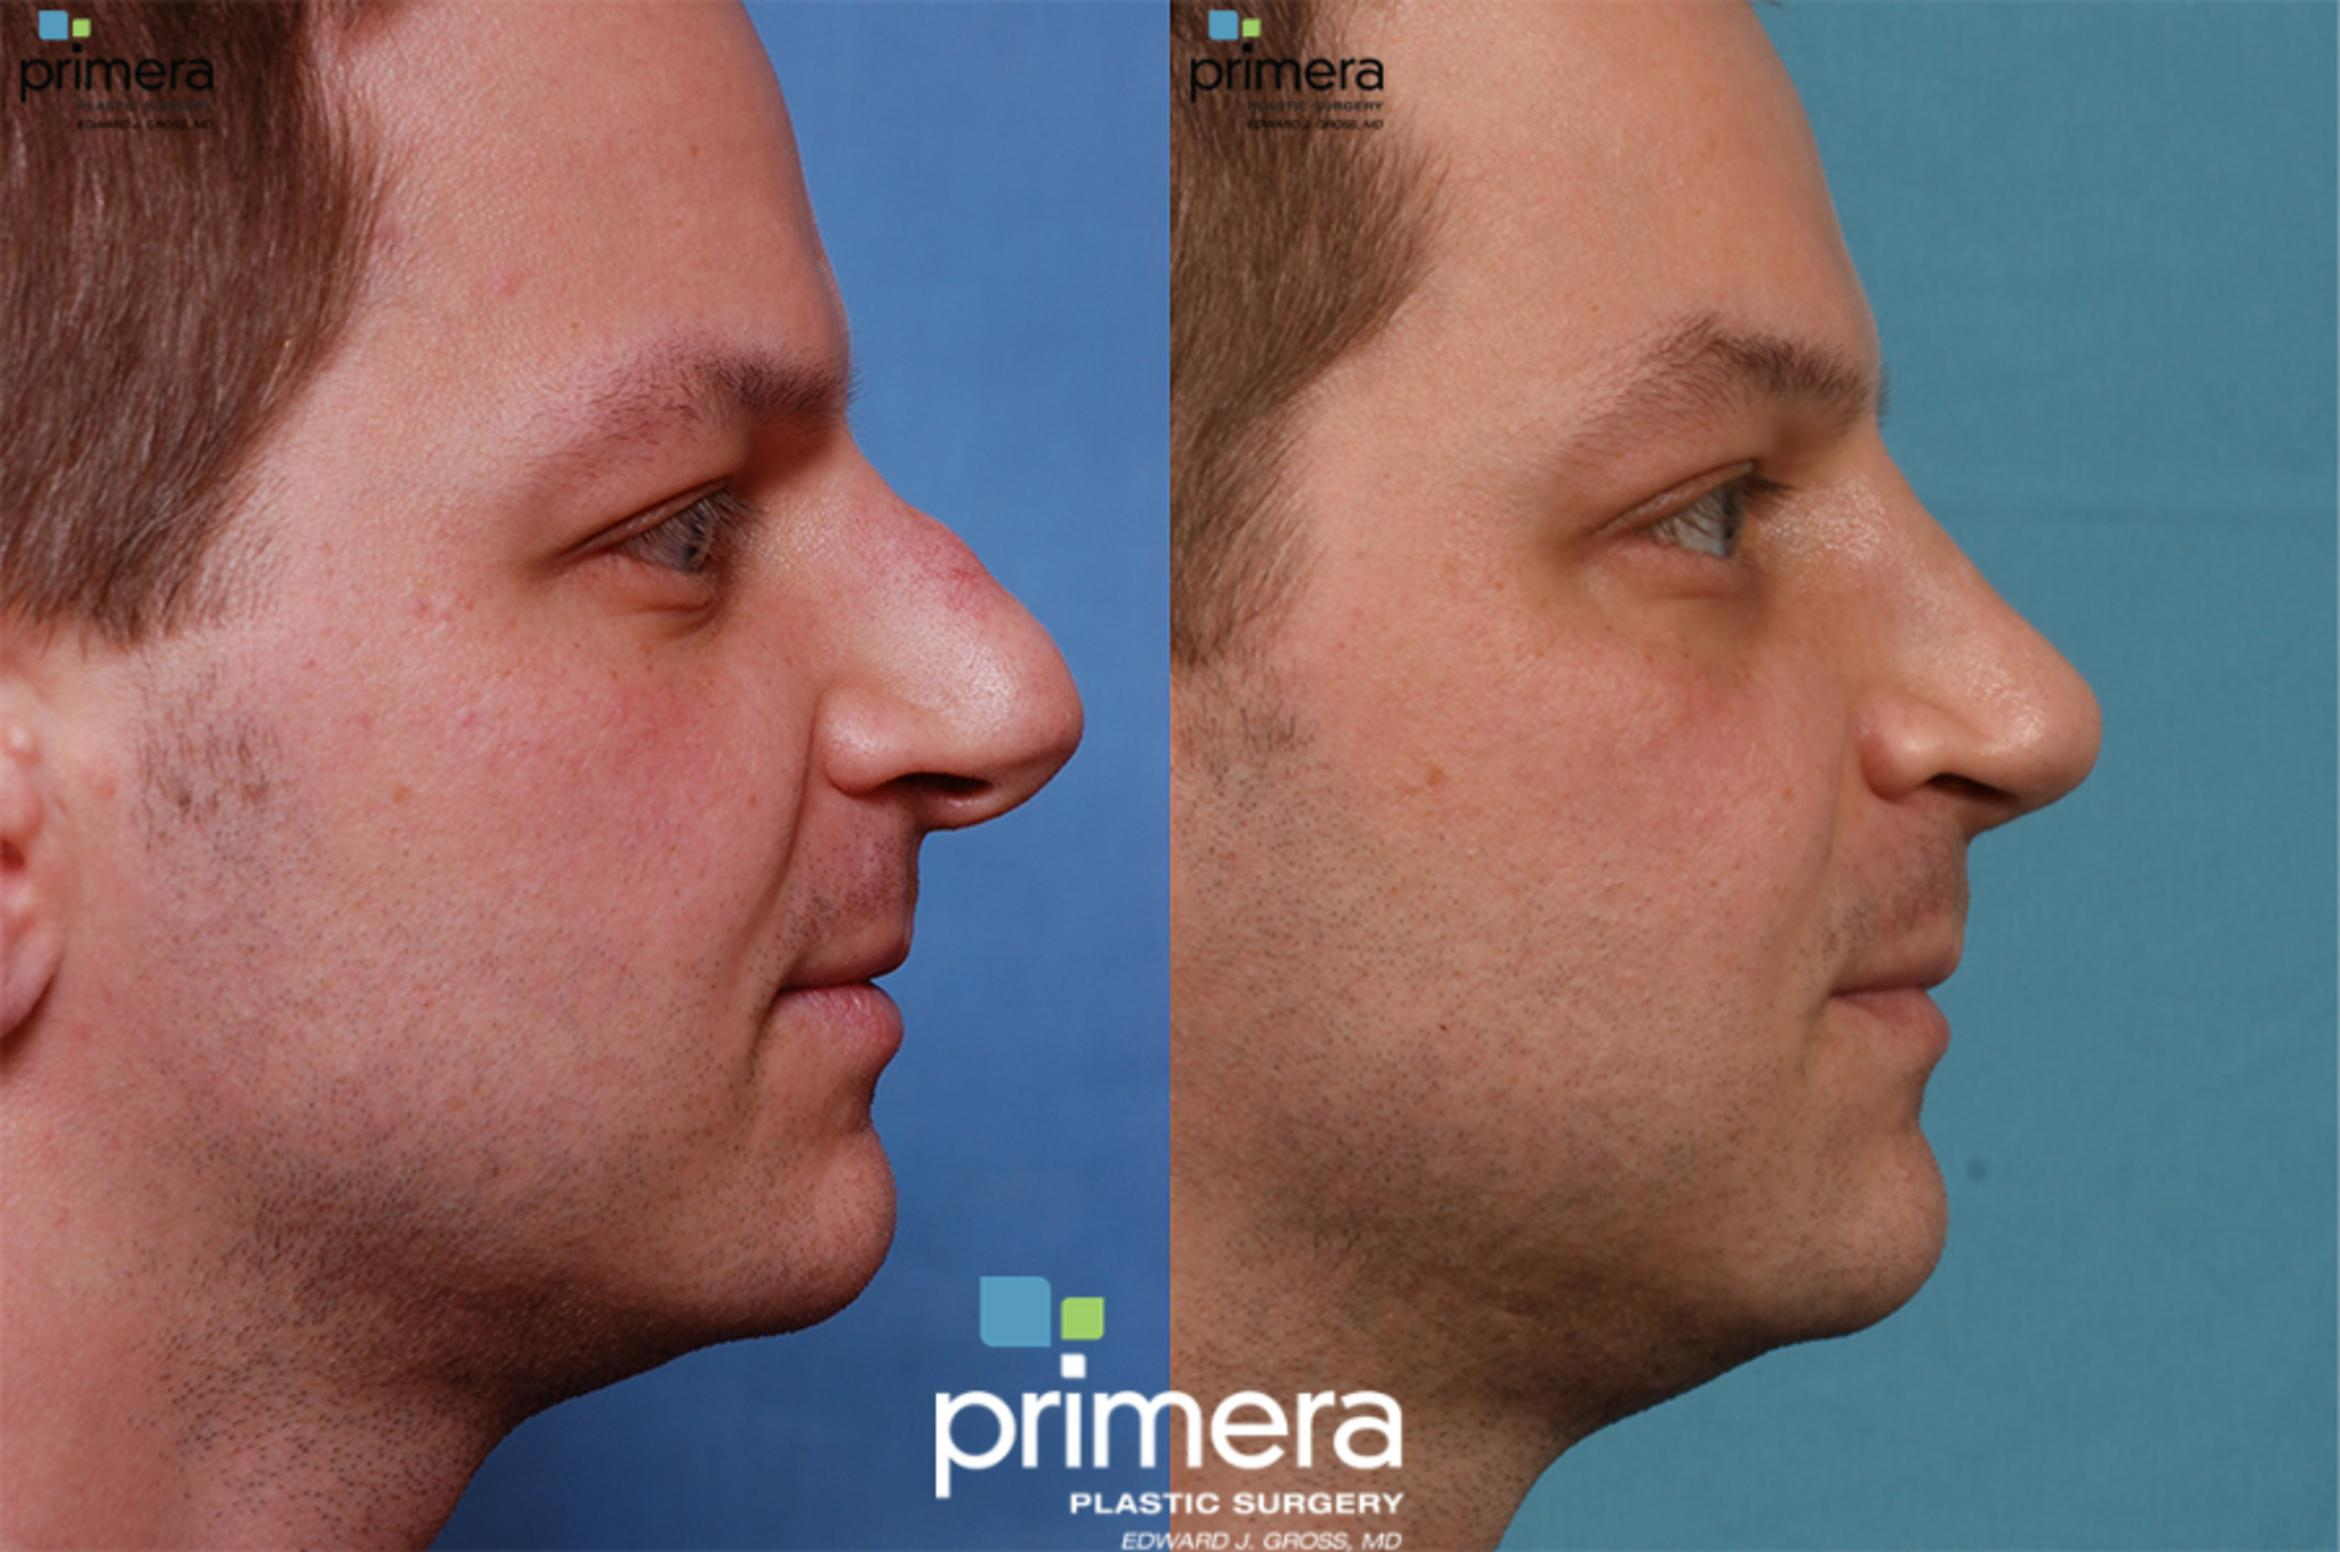 Surgery for Men Before & After Photo | Orlando, Florida | Primera Plastic Surgery